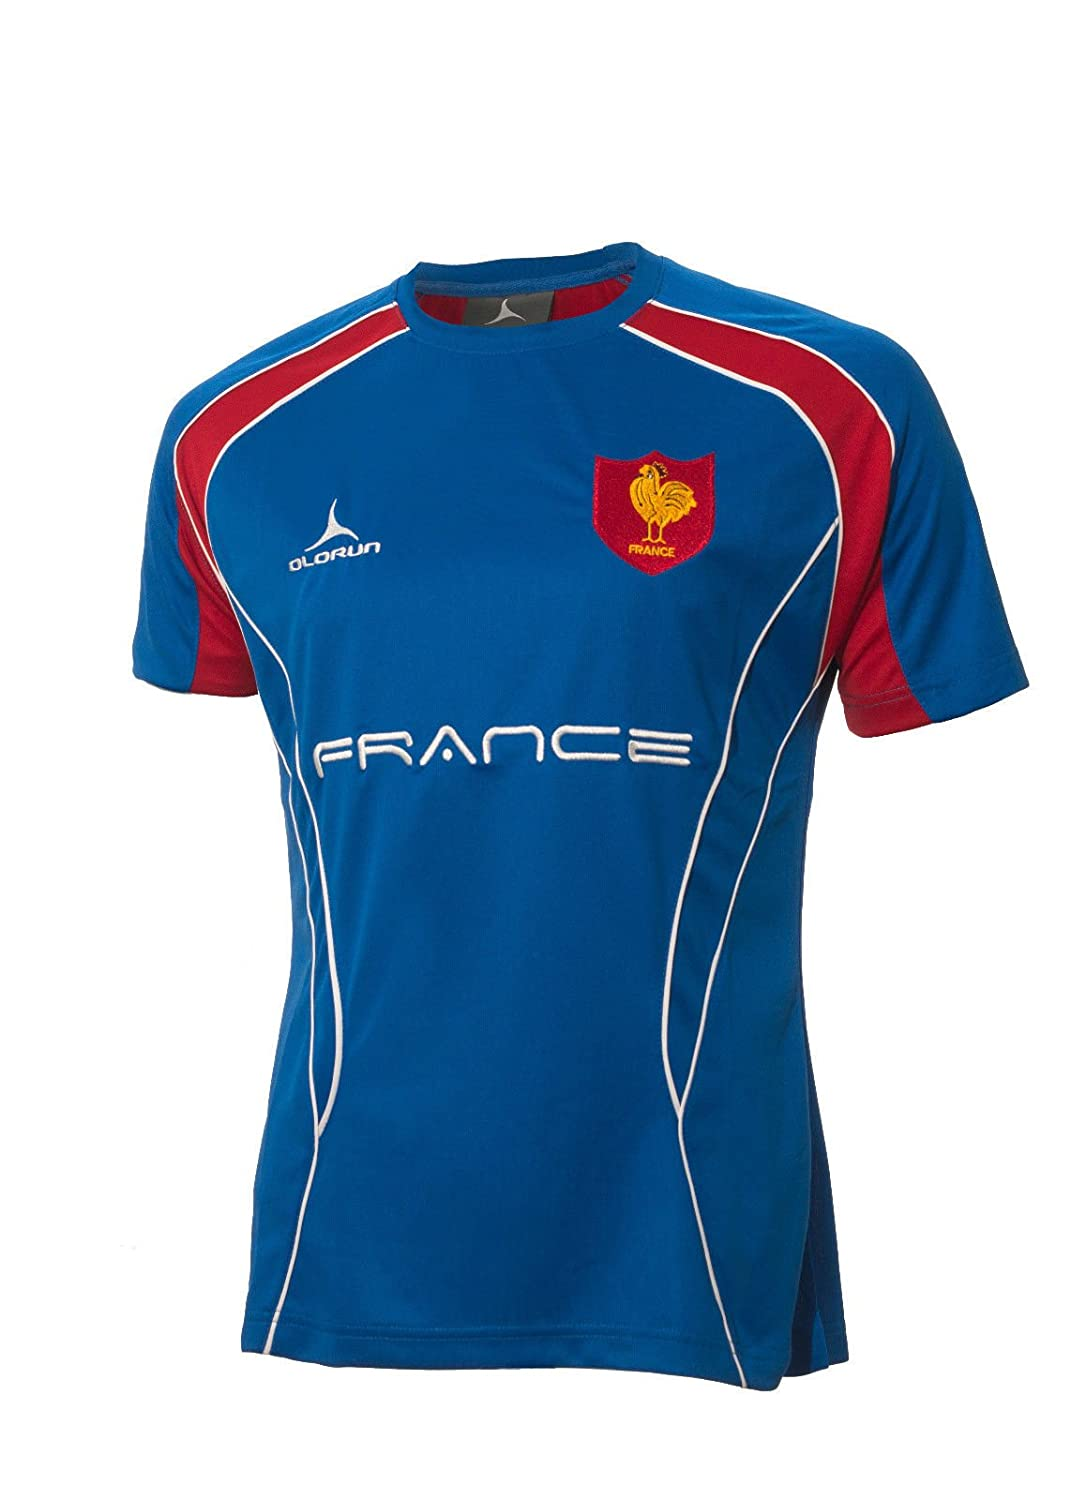 France Rugby Supporters T Shirt S Xxxxl Olorun French Royal Fashion Big Size World Cup 4xl Sports Outdoors